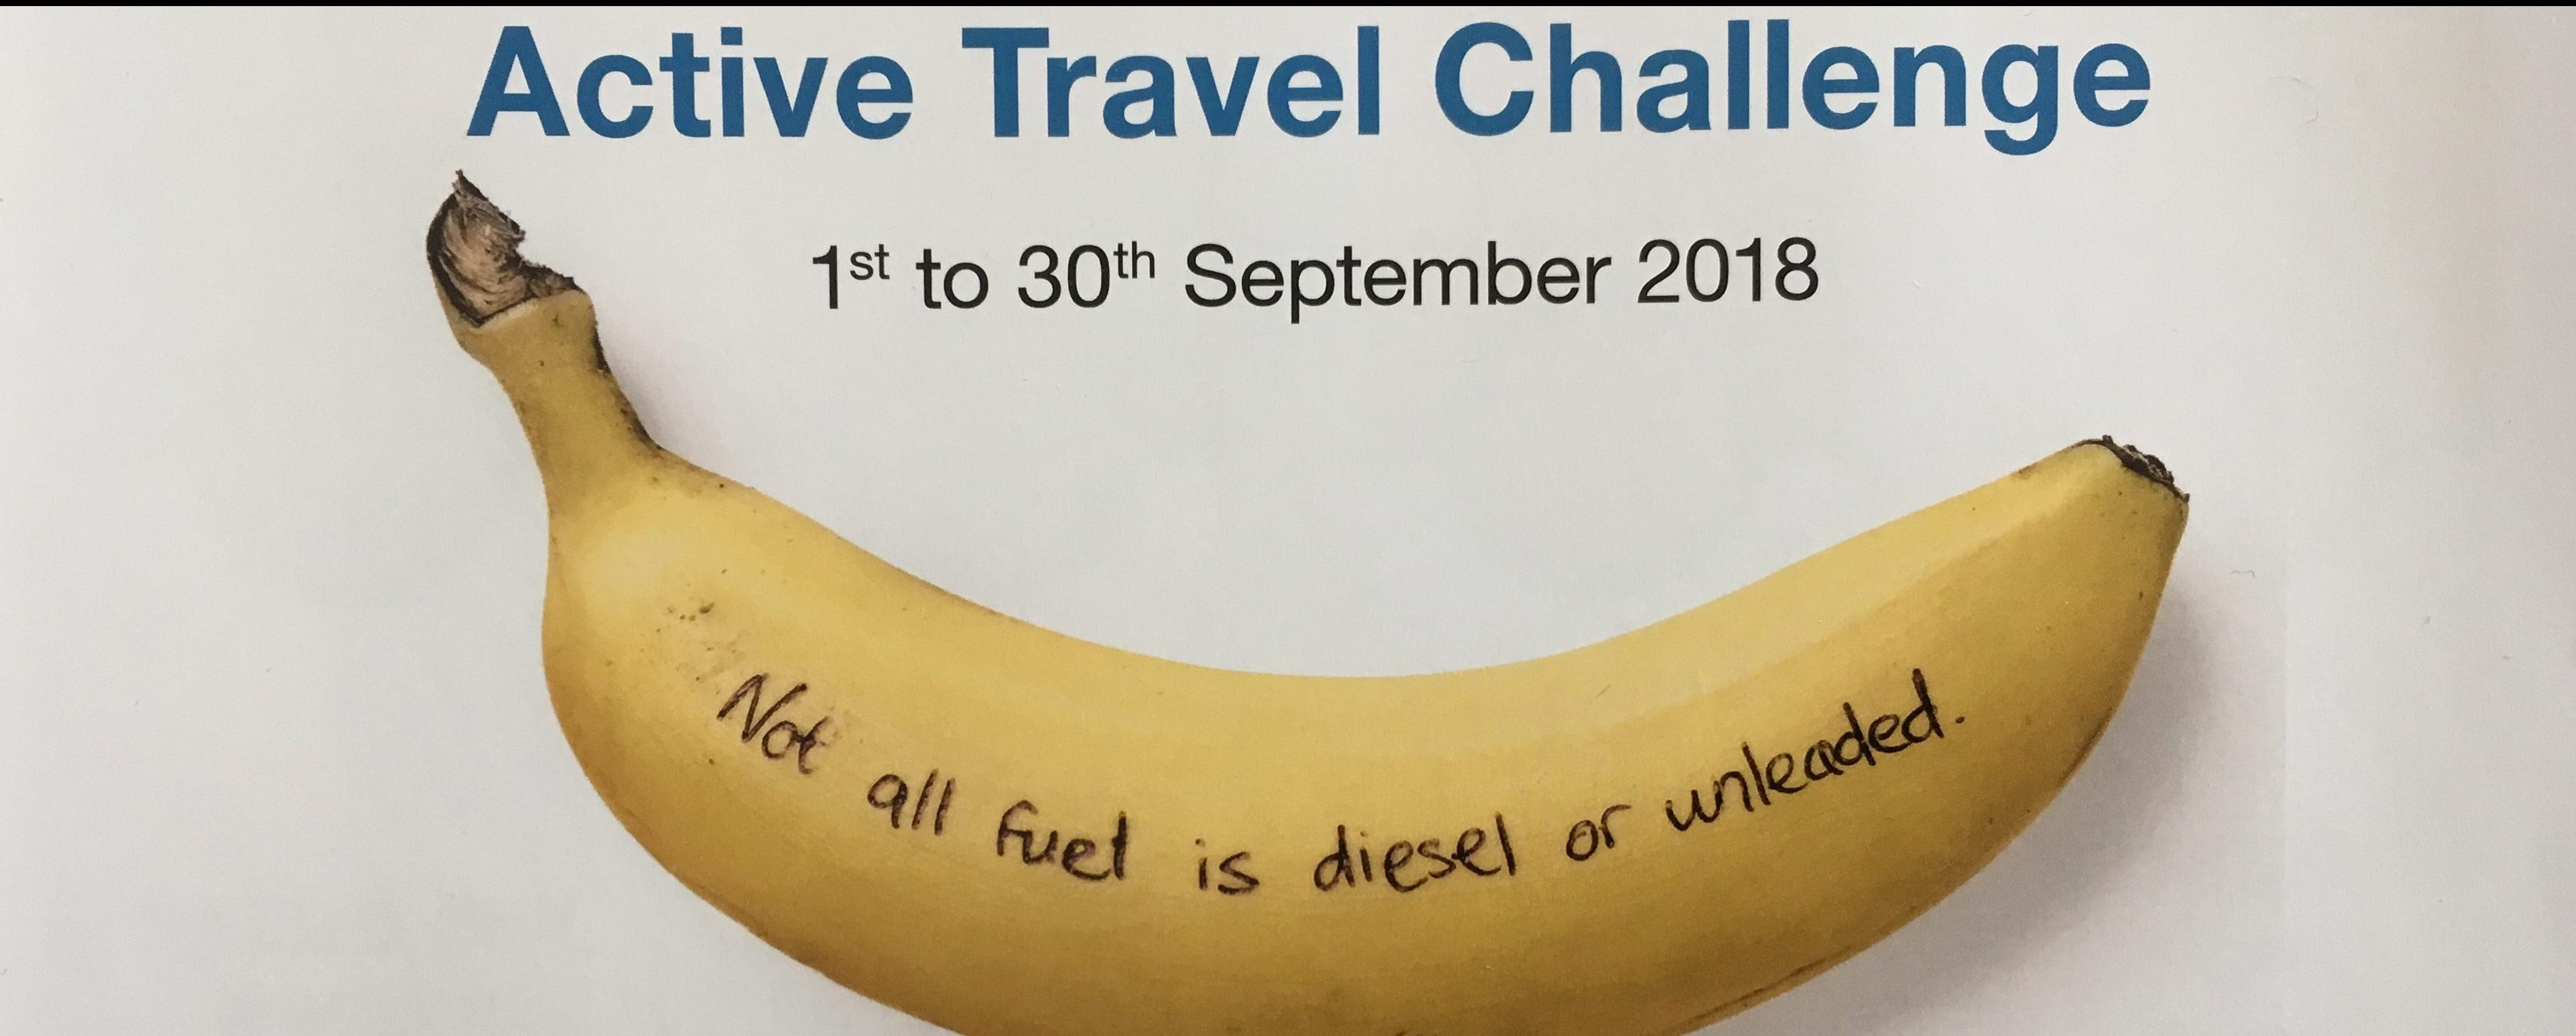 Active Travel Challenge